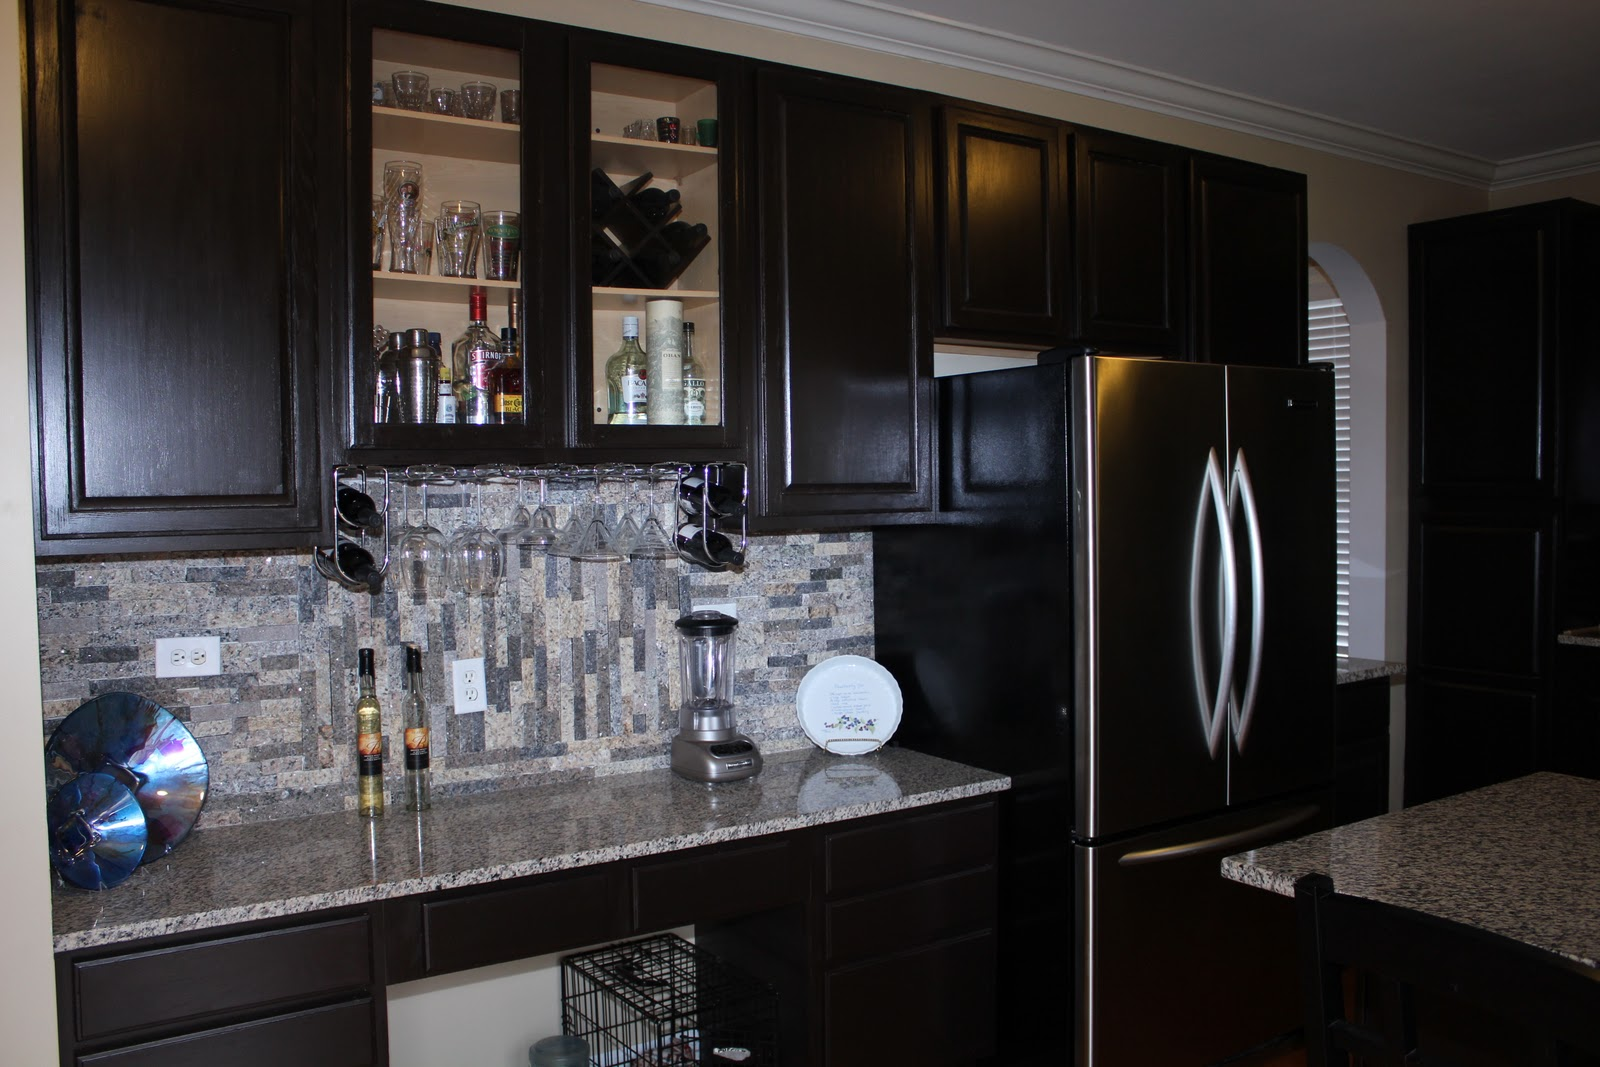 do it yourself kitchen cabinet refacing kitchen cabinet refacing Do it yourself kitchen cabinet refacing